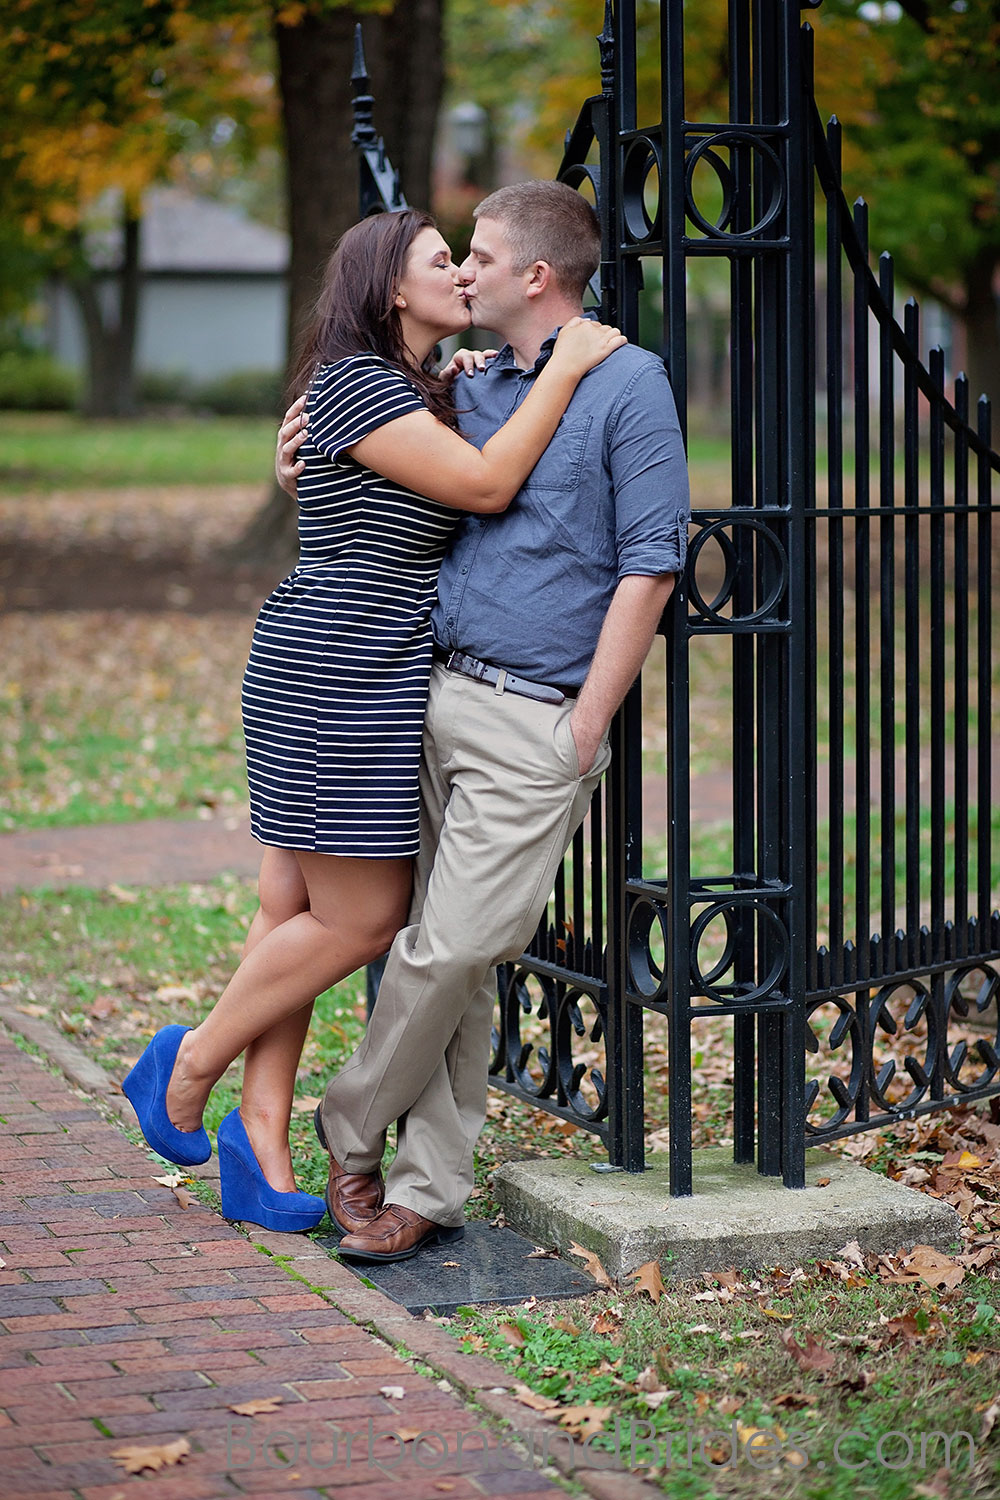 Leaning against gate in Gratz Park Kentucky Engagement Photos| Kentucky Wedding Photographers | Bourbon & Brides Kentucky Wedding Photography